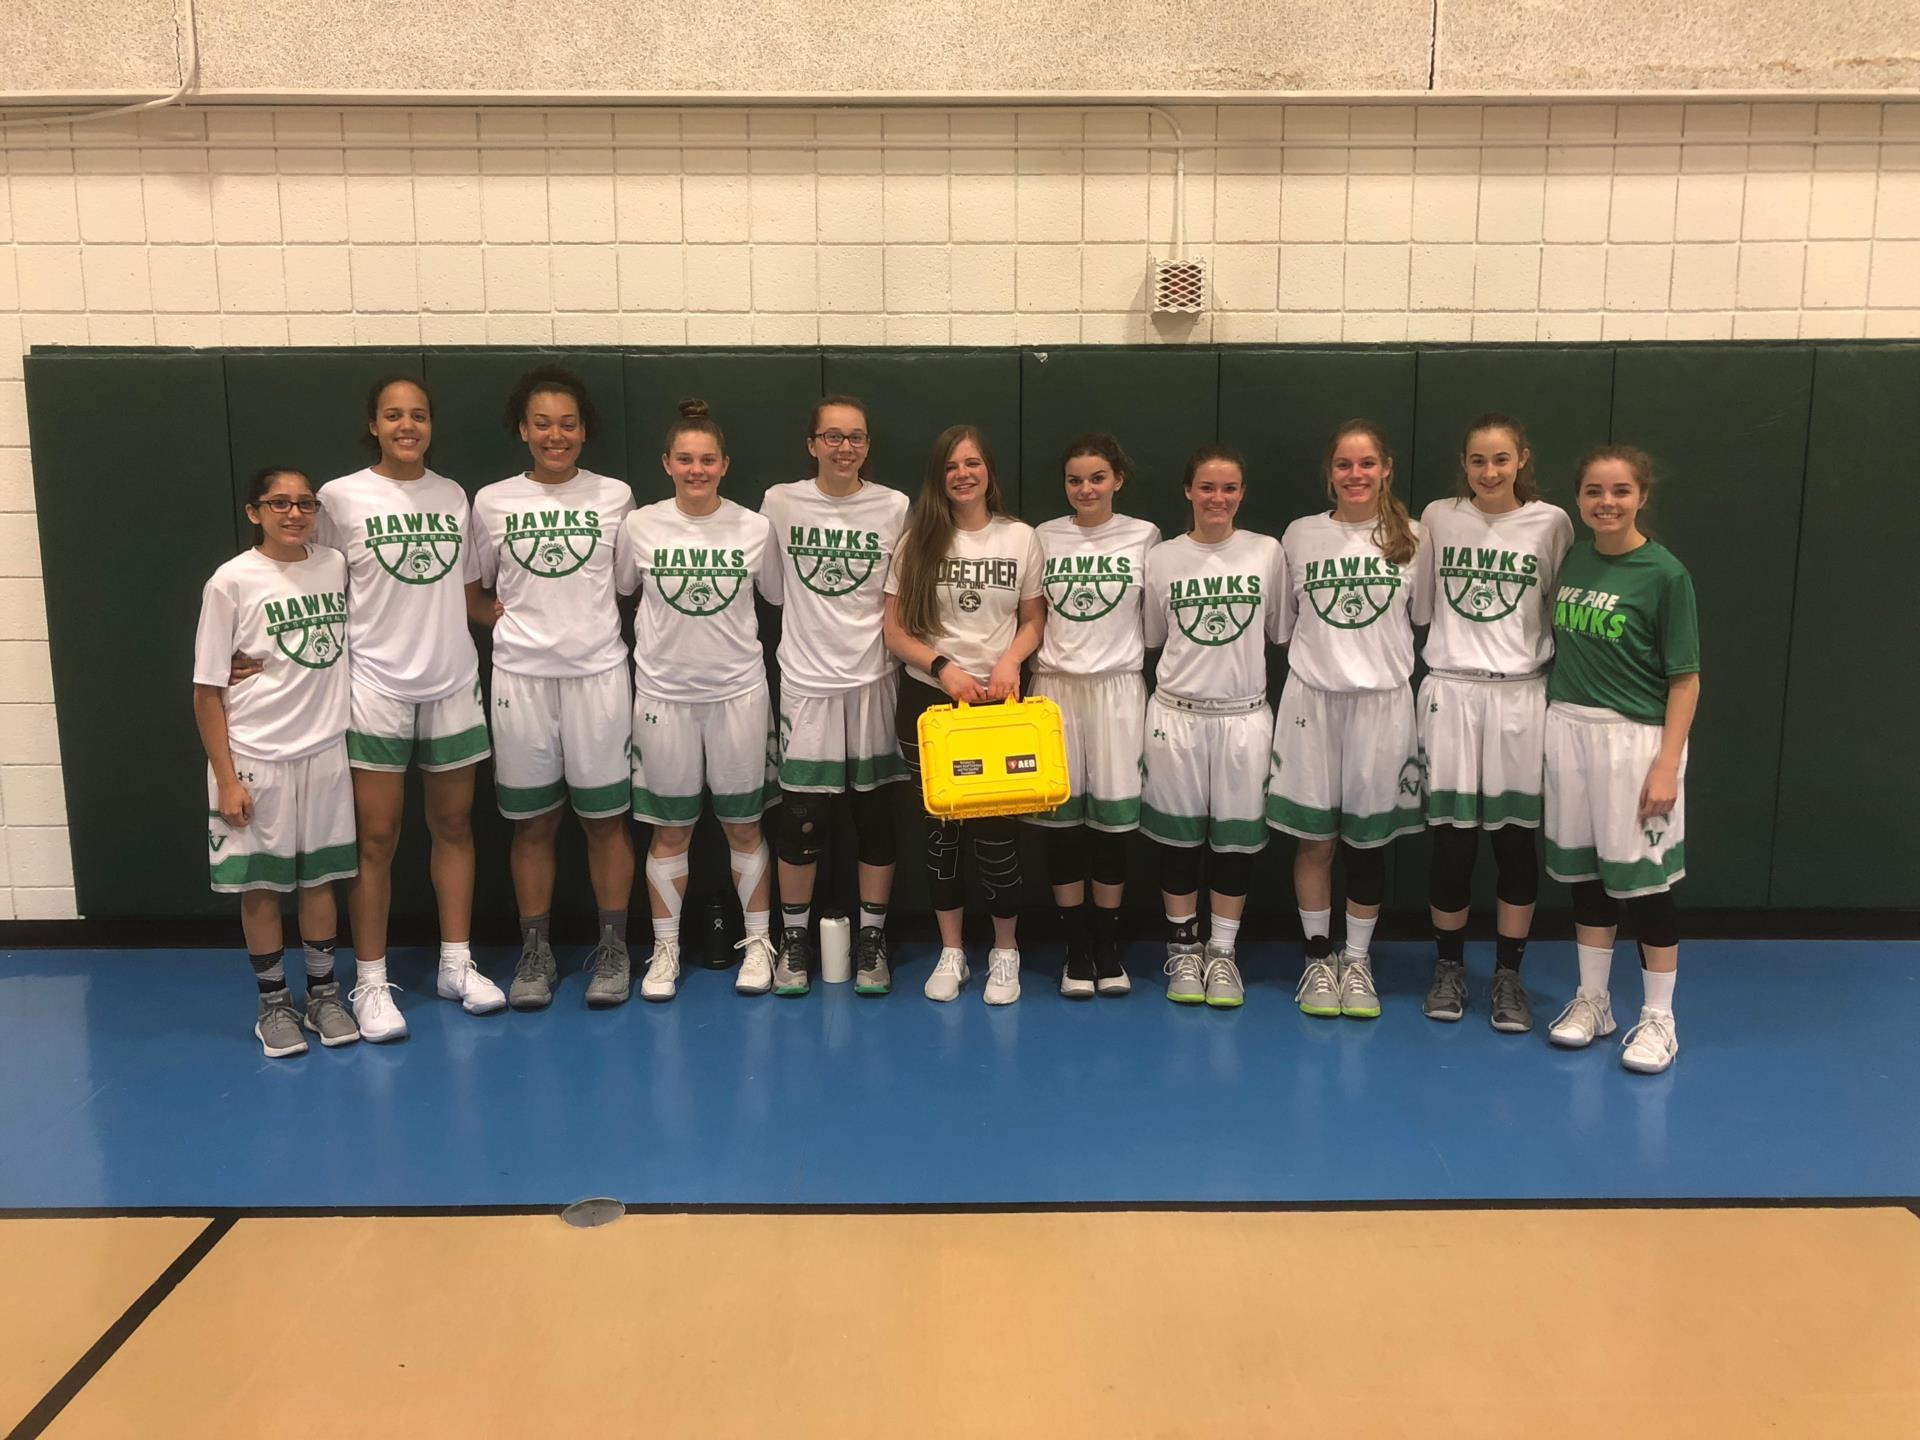 TVHS Girls Basketball with AED kit